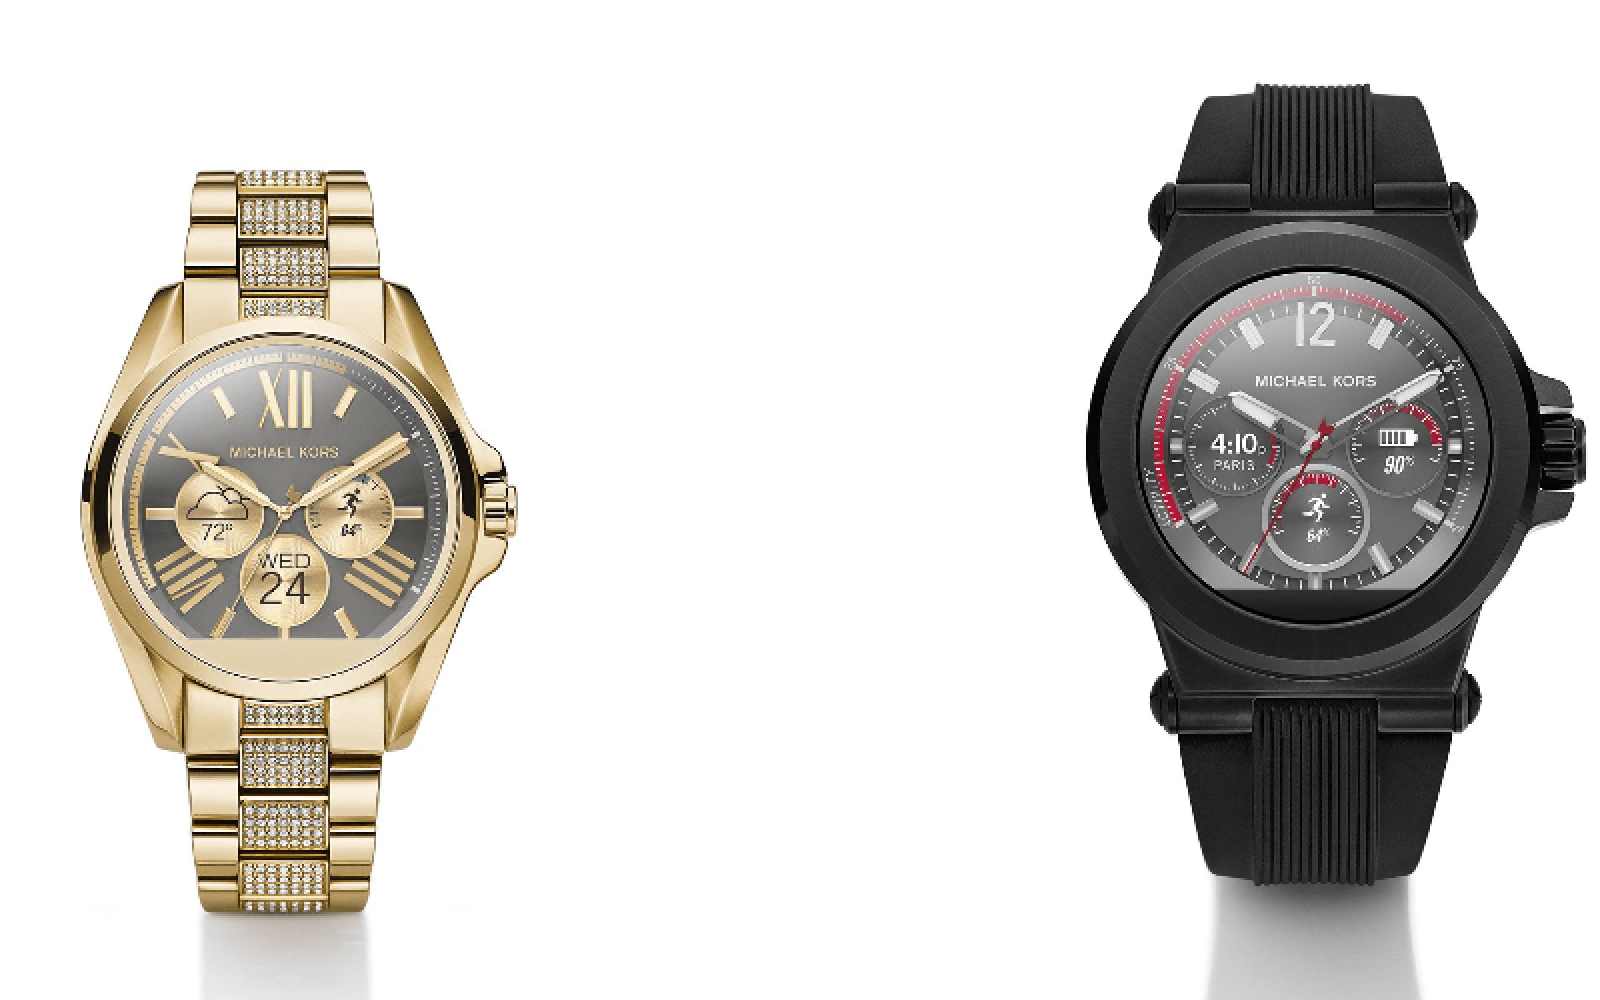 1ffc0b9a232a Michael Kors  Access Android Wear smartwatches are now available starting  at  350  Video